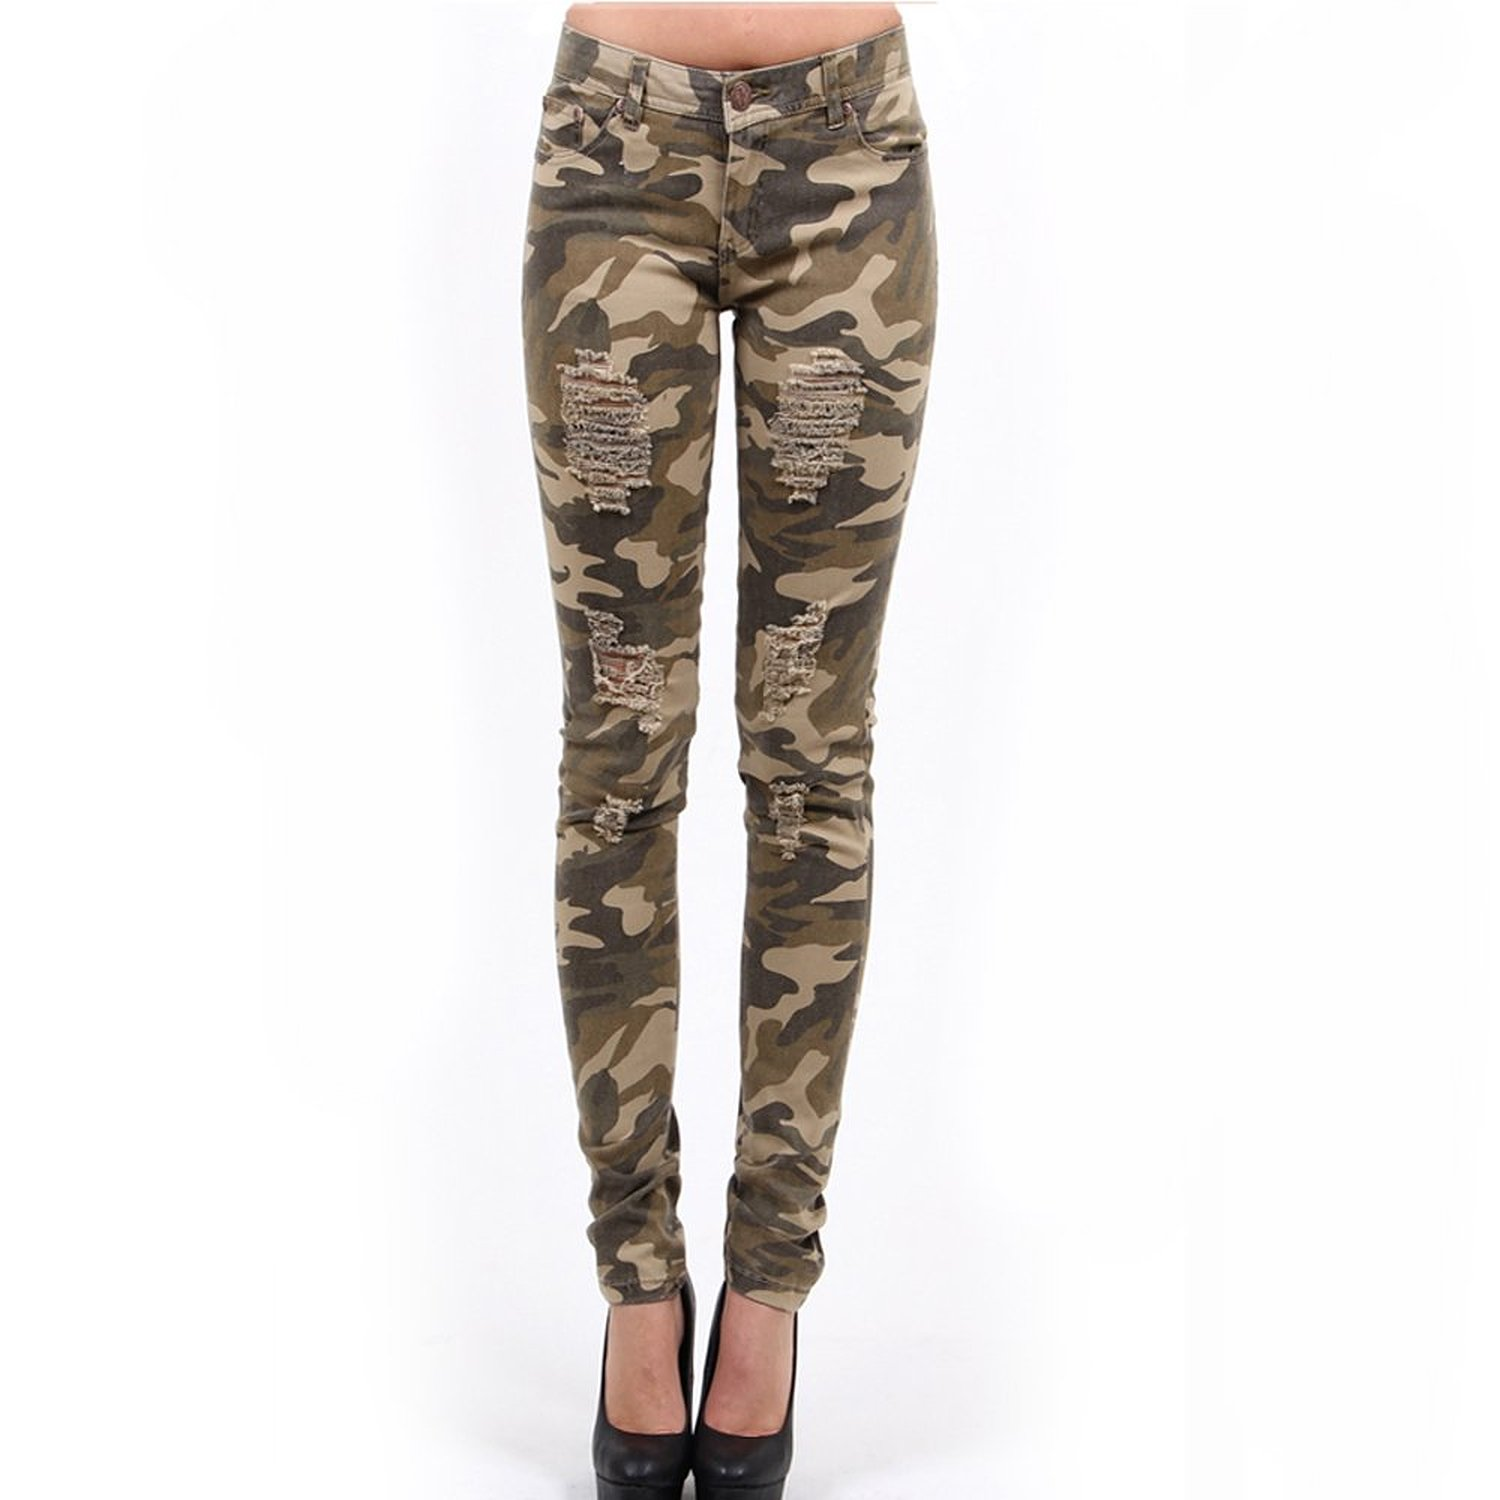 Brilliant Women Camouflage Uniform Pantsin Pants Amp Capris From Women39s Clothin